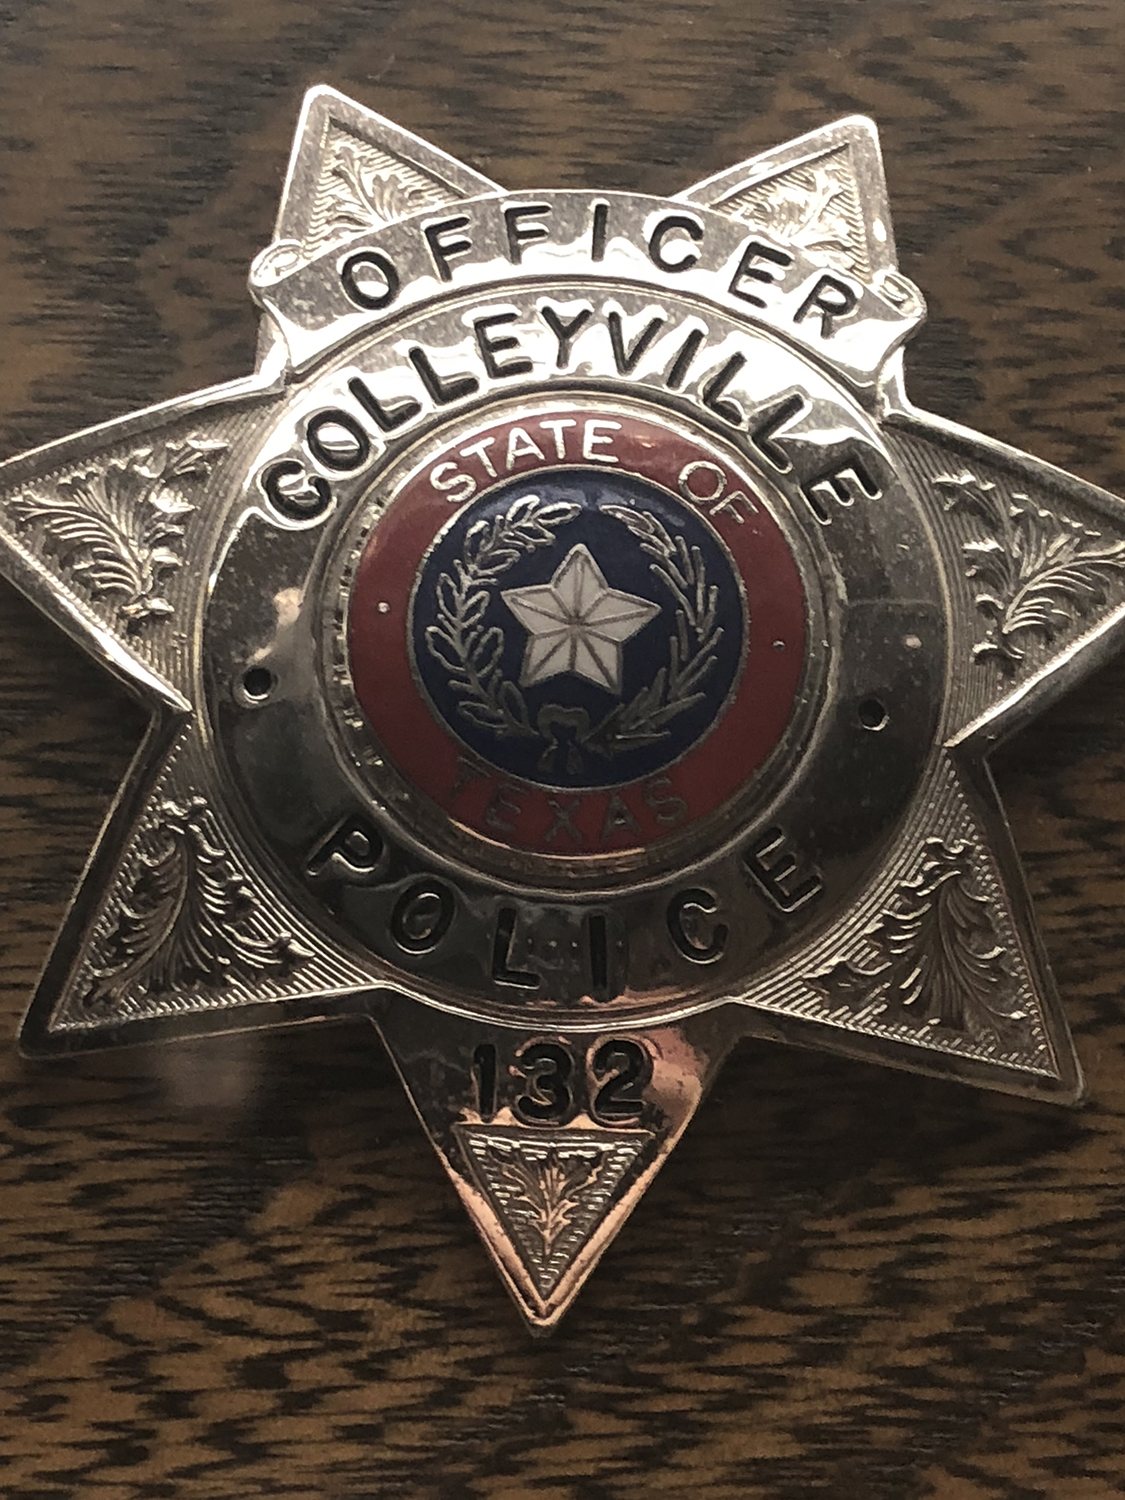 Reserve Officer Dennis Edward Harrell | Colleyville Police Department, Texas